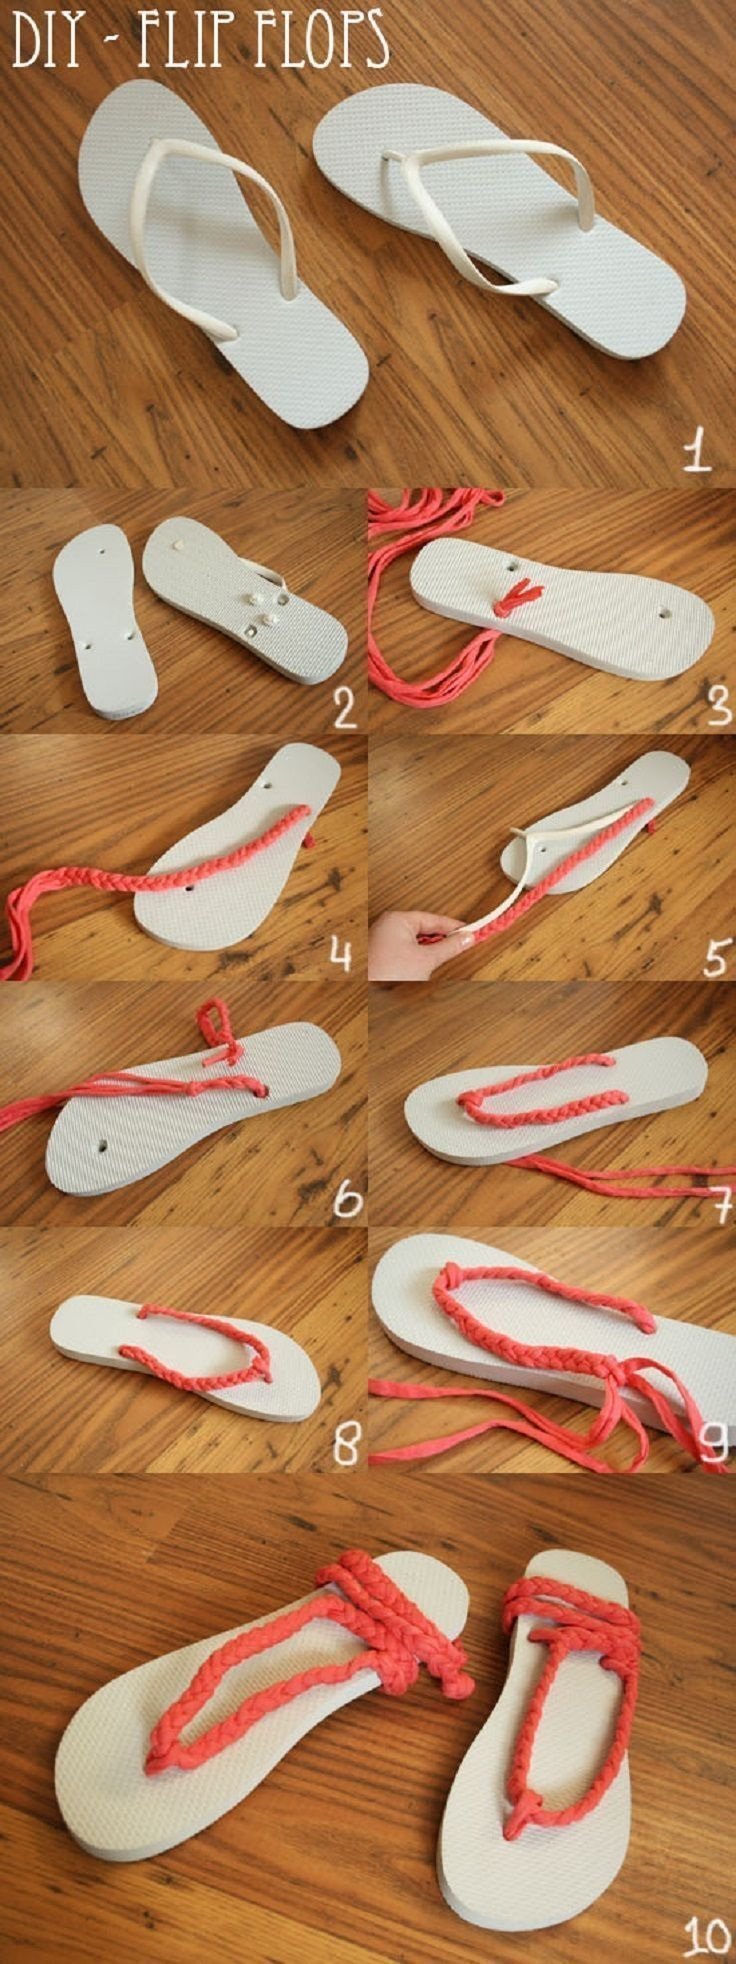 DIY your own flip flops with a foam base and some string.